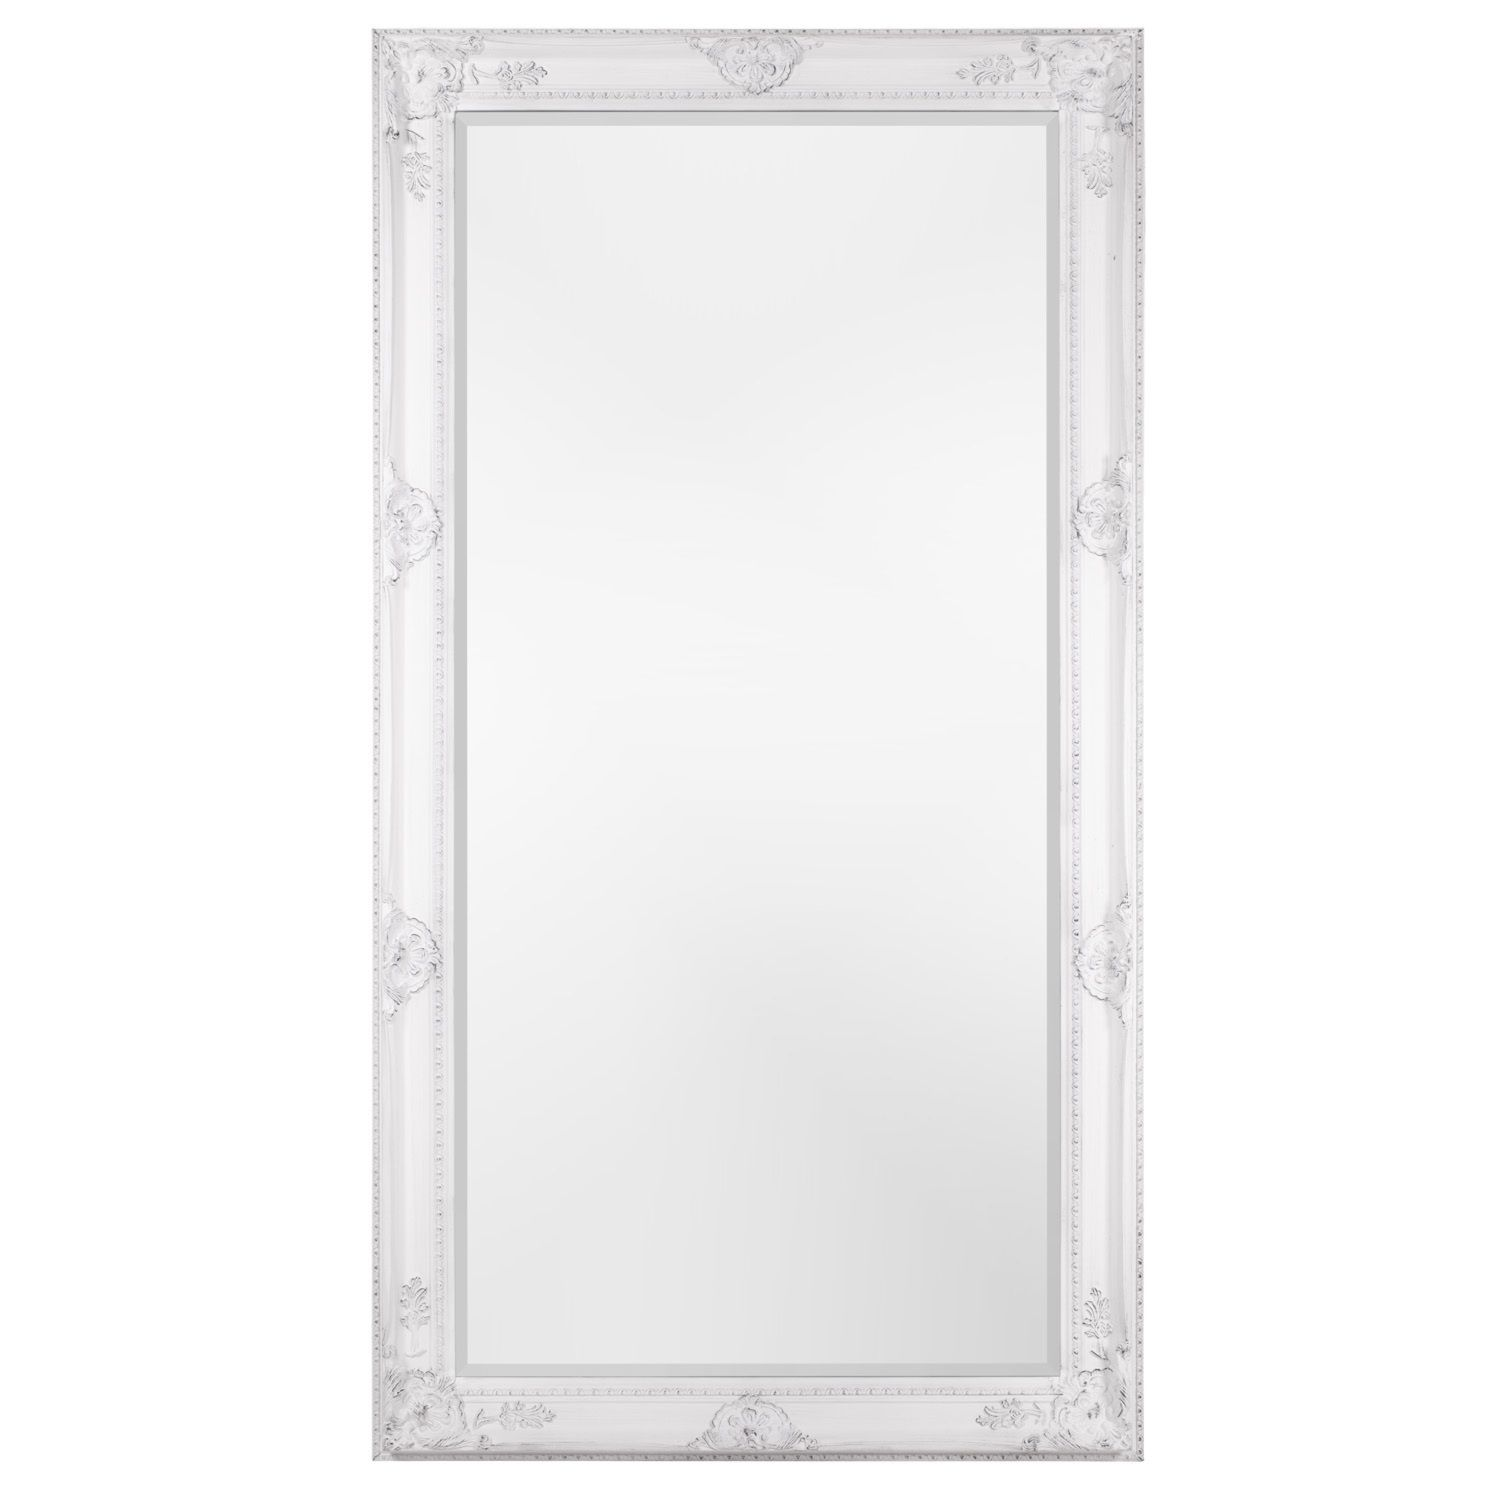 Wilko baroque mirror silver 87x62cm - Sophia Lean To Mirror From The Range 59 99 Full Length Mirror For Using